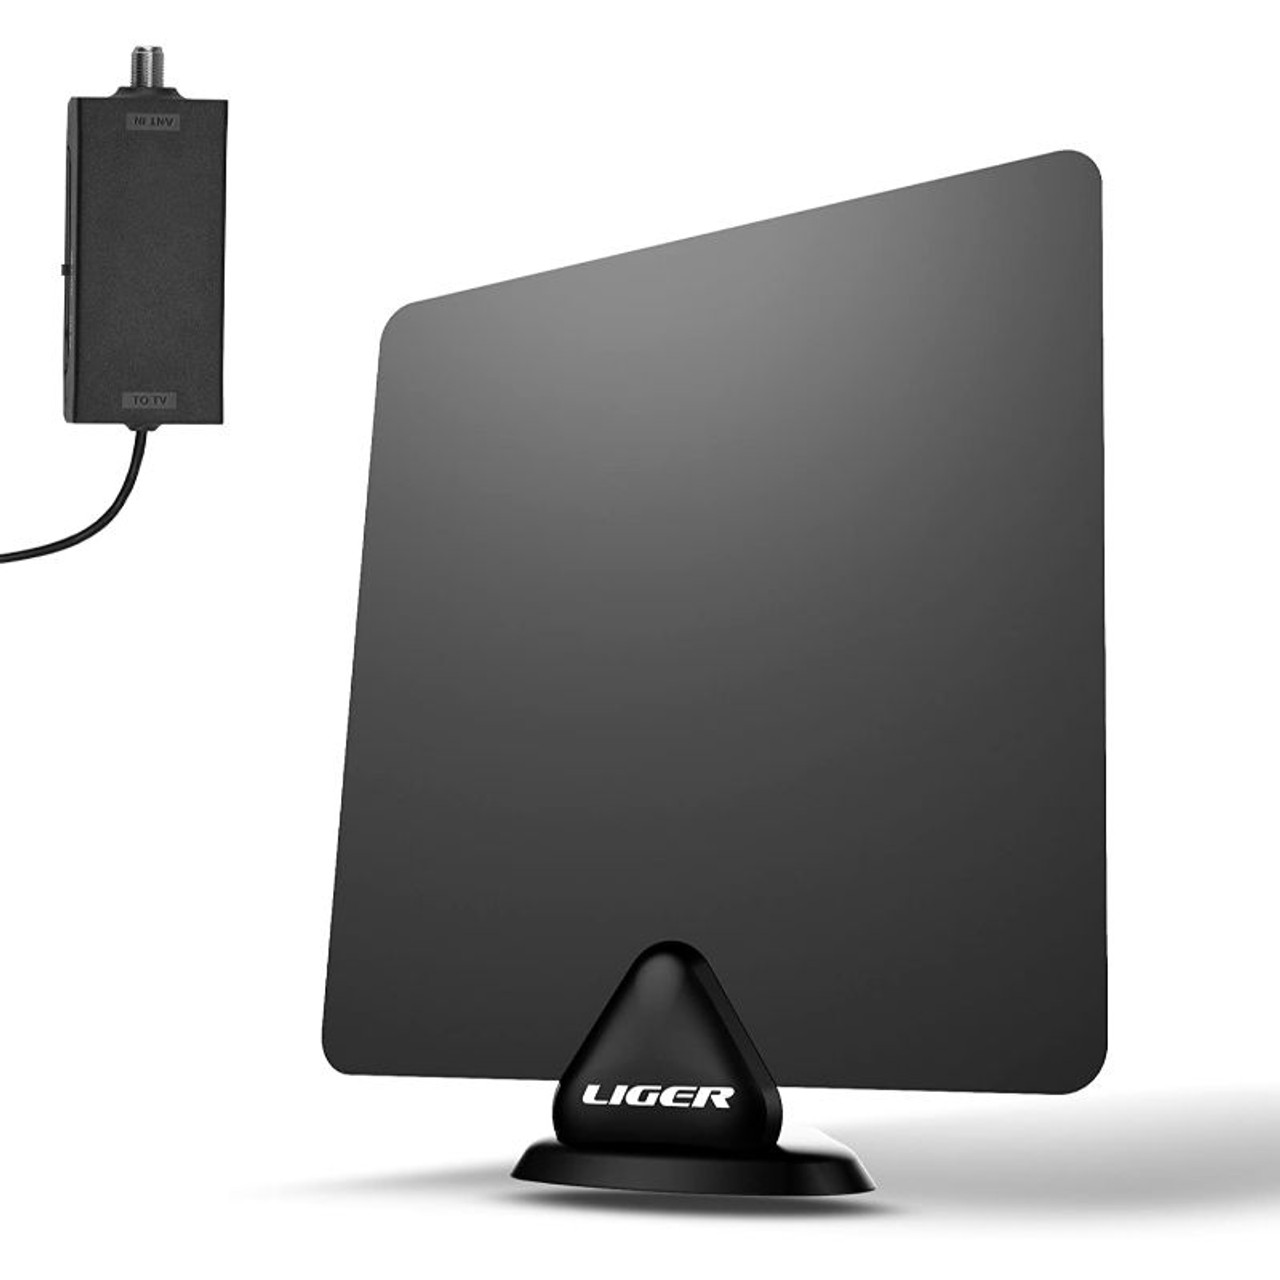 Liger HDTV Antenna and Amplifier, Ultra-Thin Indoor Antenna and Amplifier